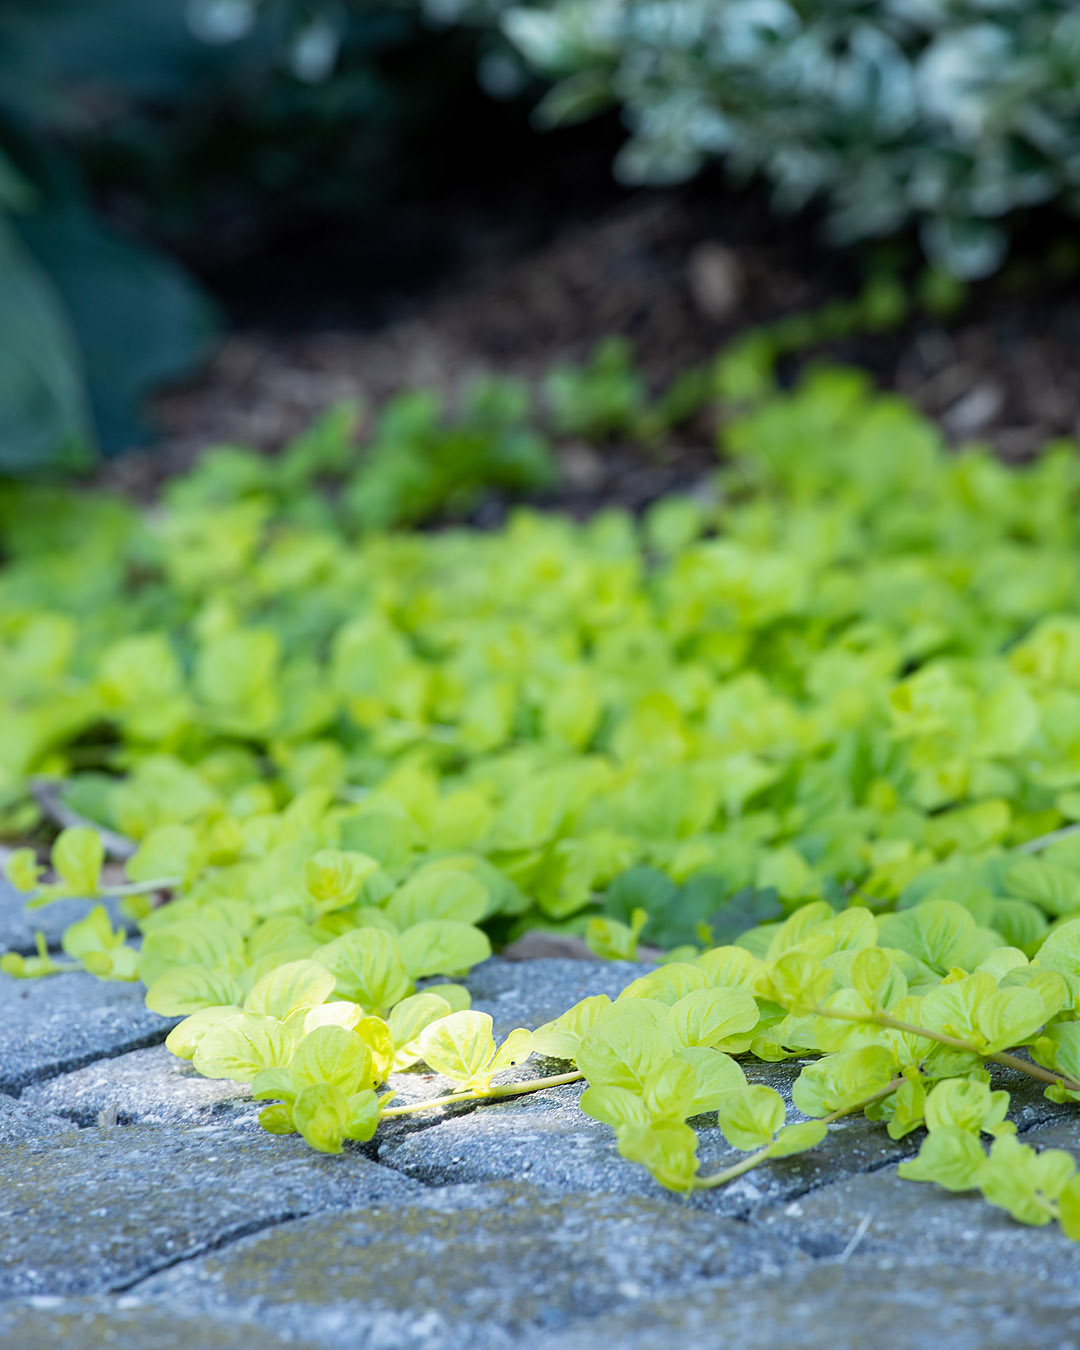 Today I'll be sharing my tips for how to grow Creeping Jenny, one of my favourite plants for brightening up dull or dark spots in the garden!